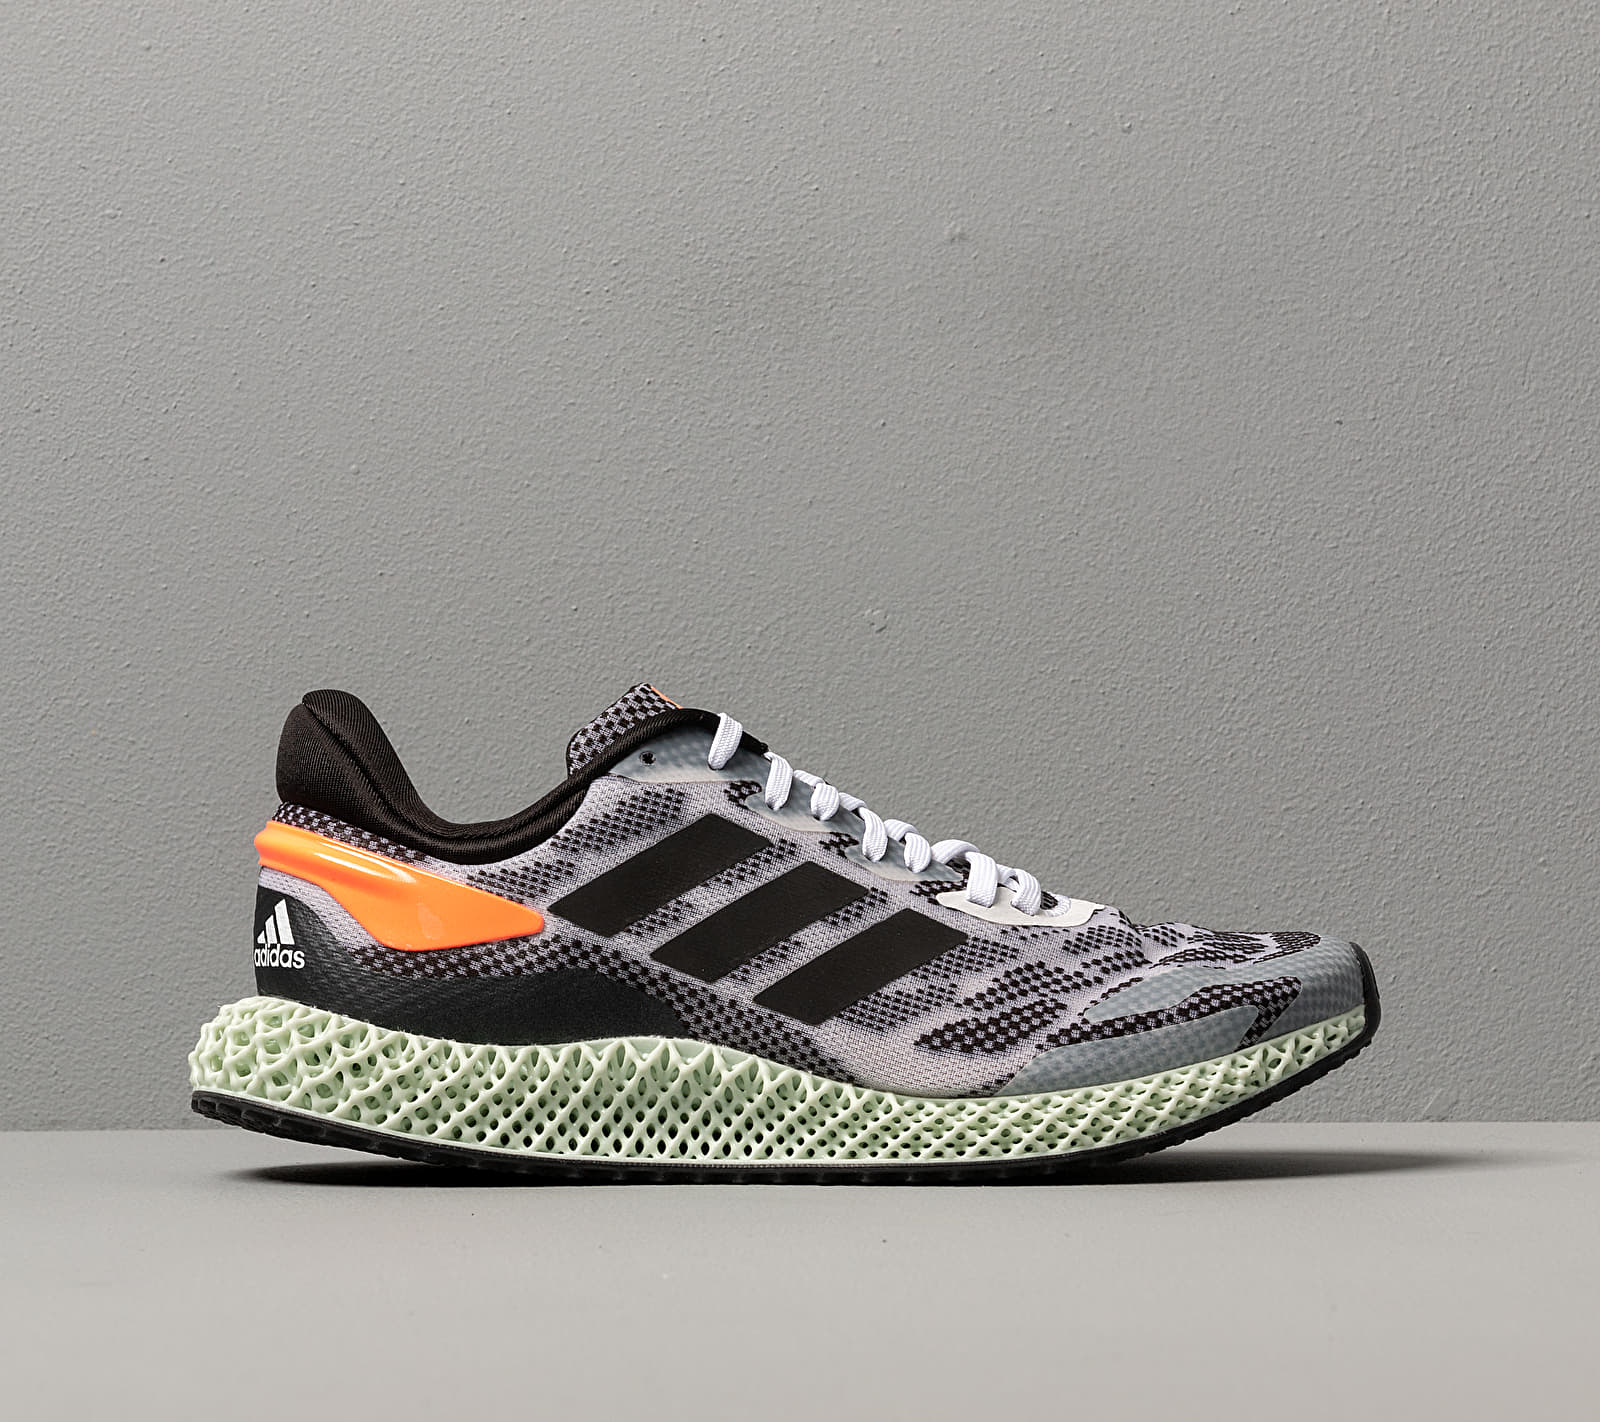 adidas 4D Run 1.0 Ftw White/ Core Black/ Signature Coral, Gray